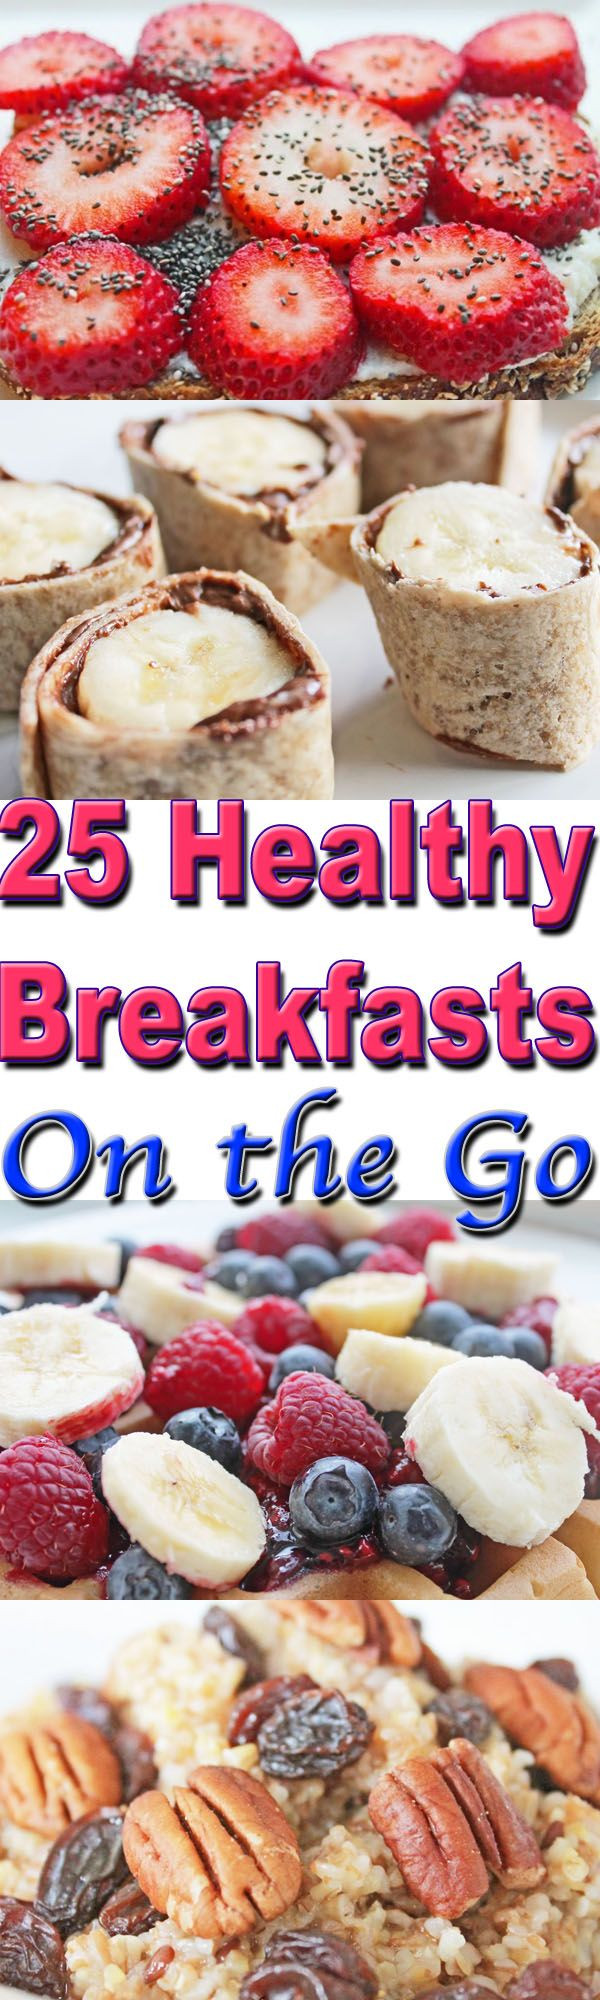 Healthy On The Go Breakfast  healthy breakfasts on the go collage 1